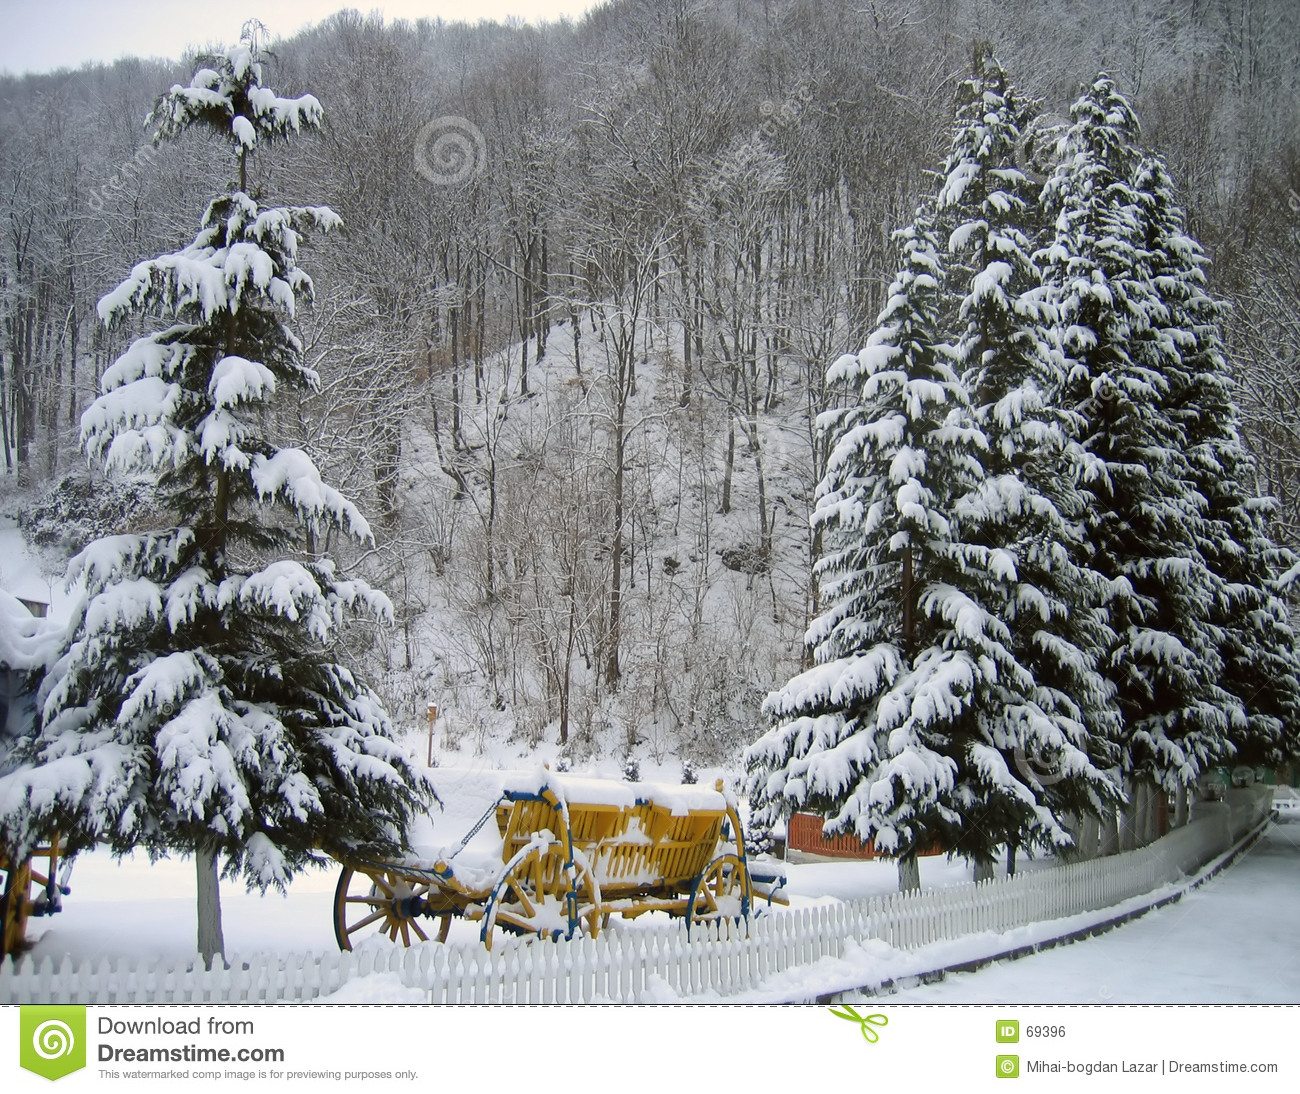 7 pines resort reading panel wiring diagrams pine trees in winter stock photo. image of trees, - 69396